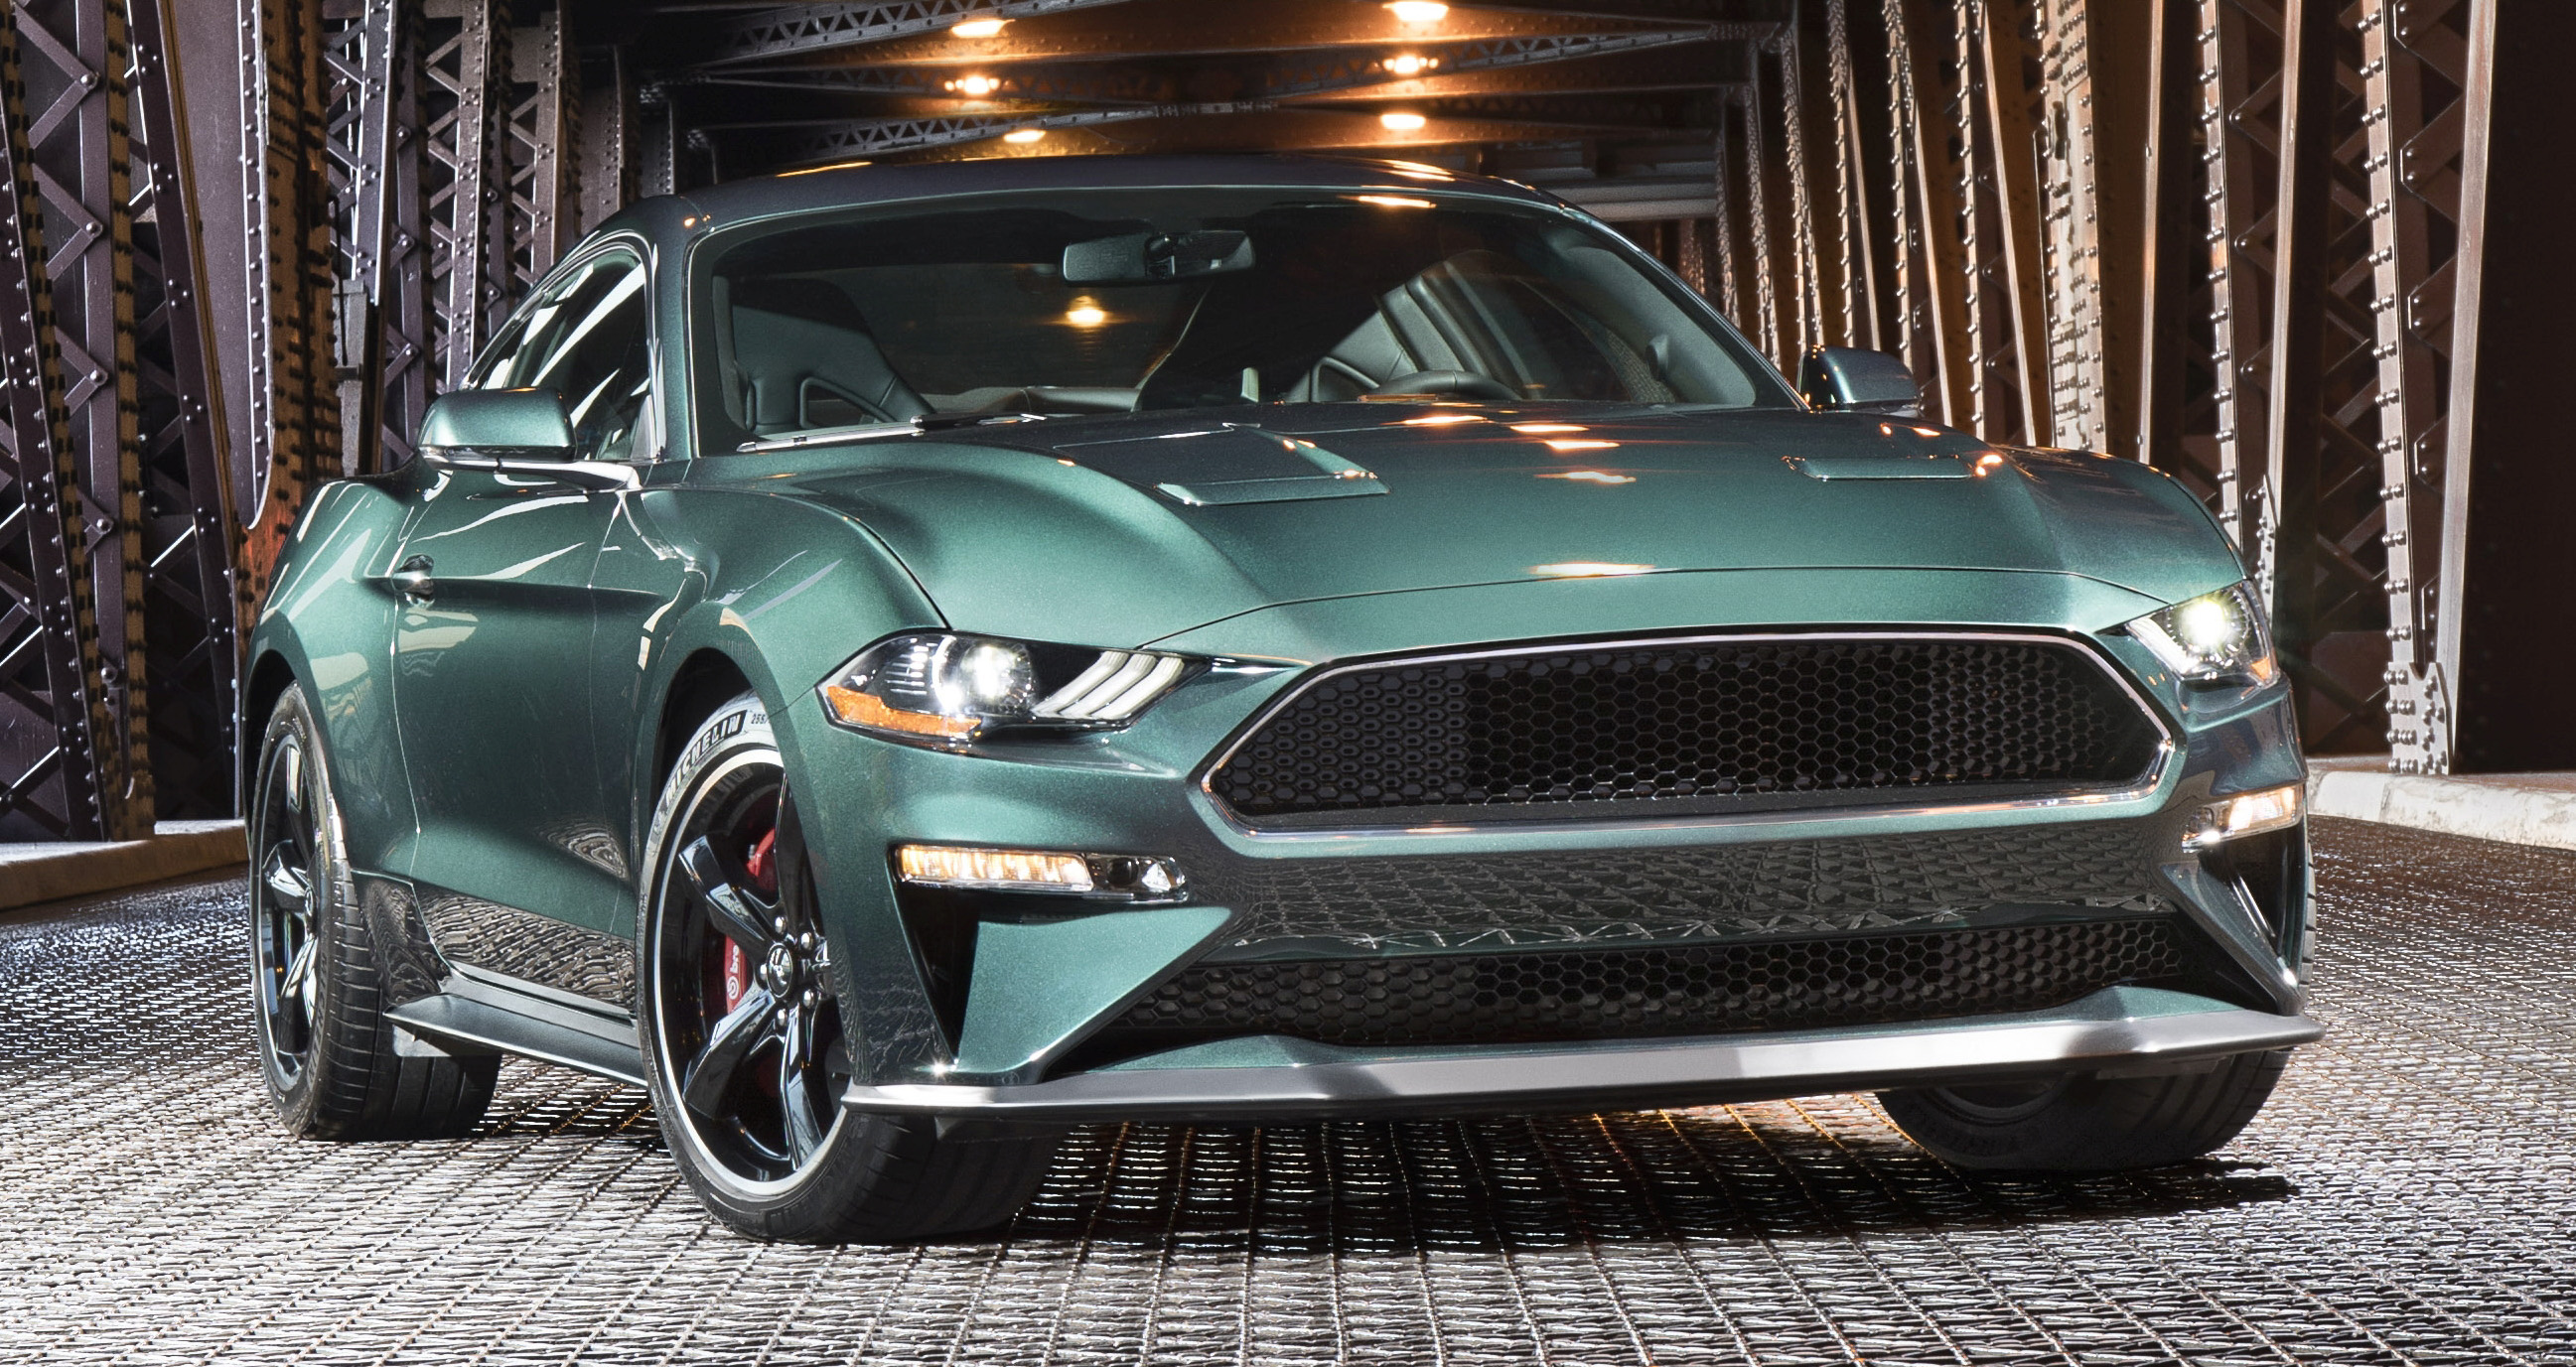 2019 ford mustang bullitt a 50th anniversary special. Black Bedroom Furniture Sets. Home Design Ideas